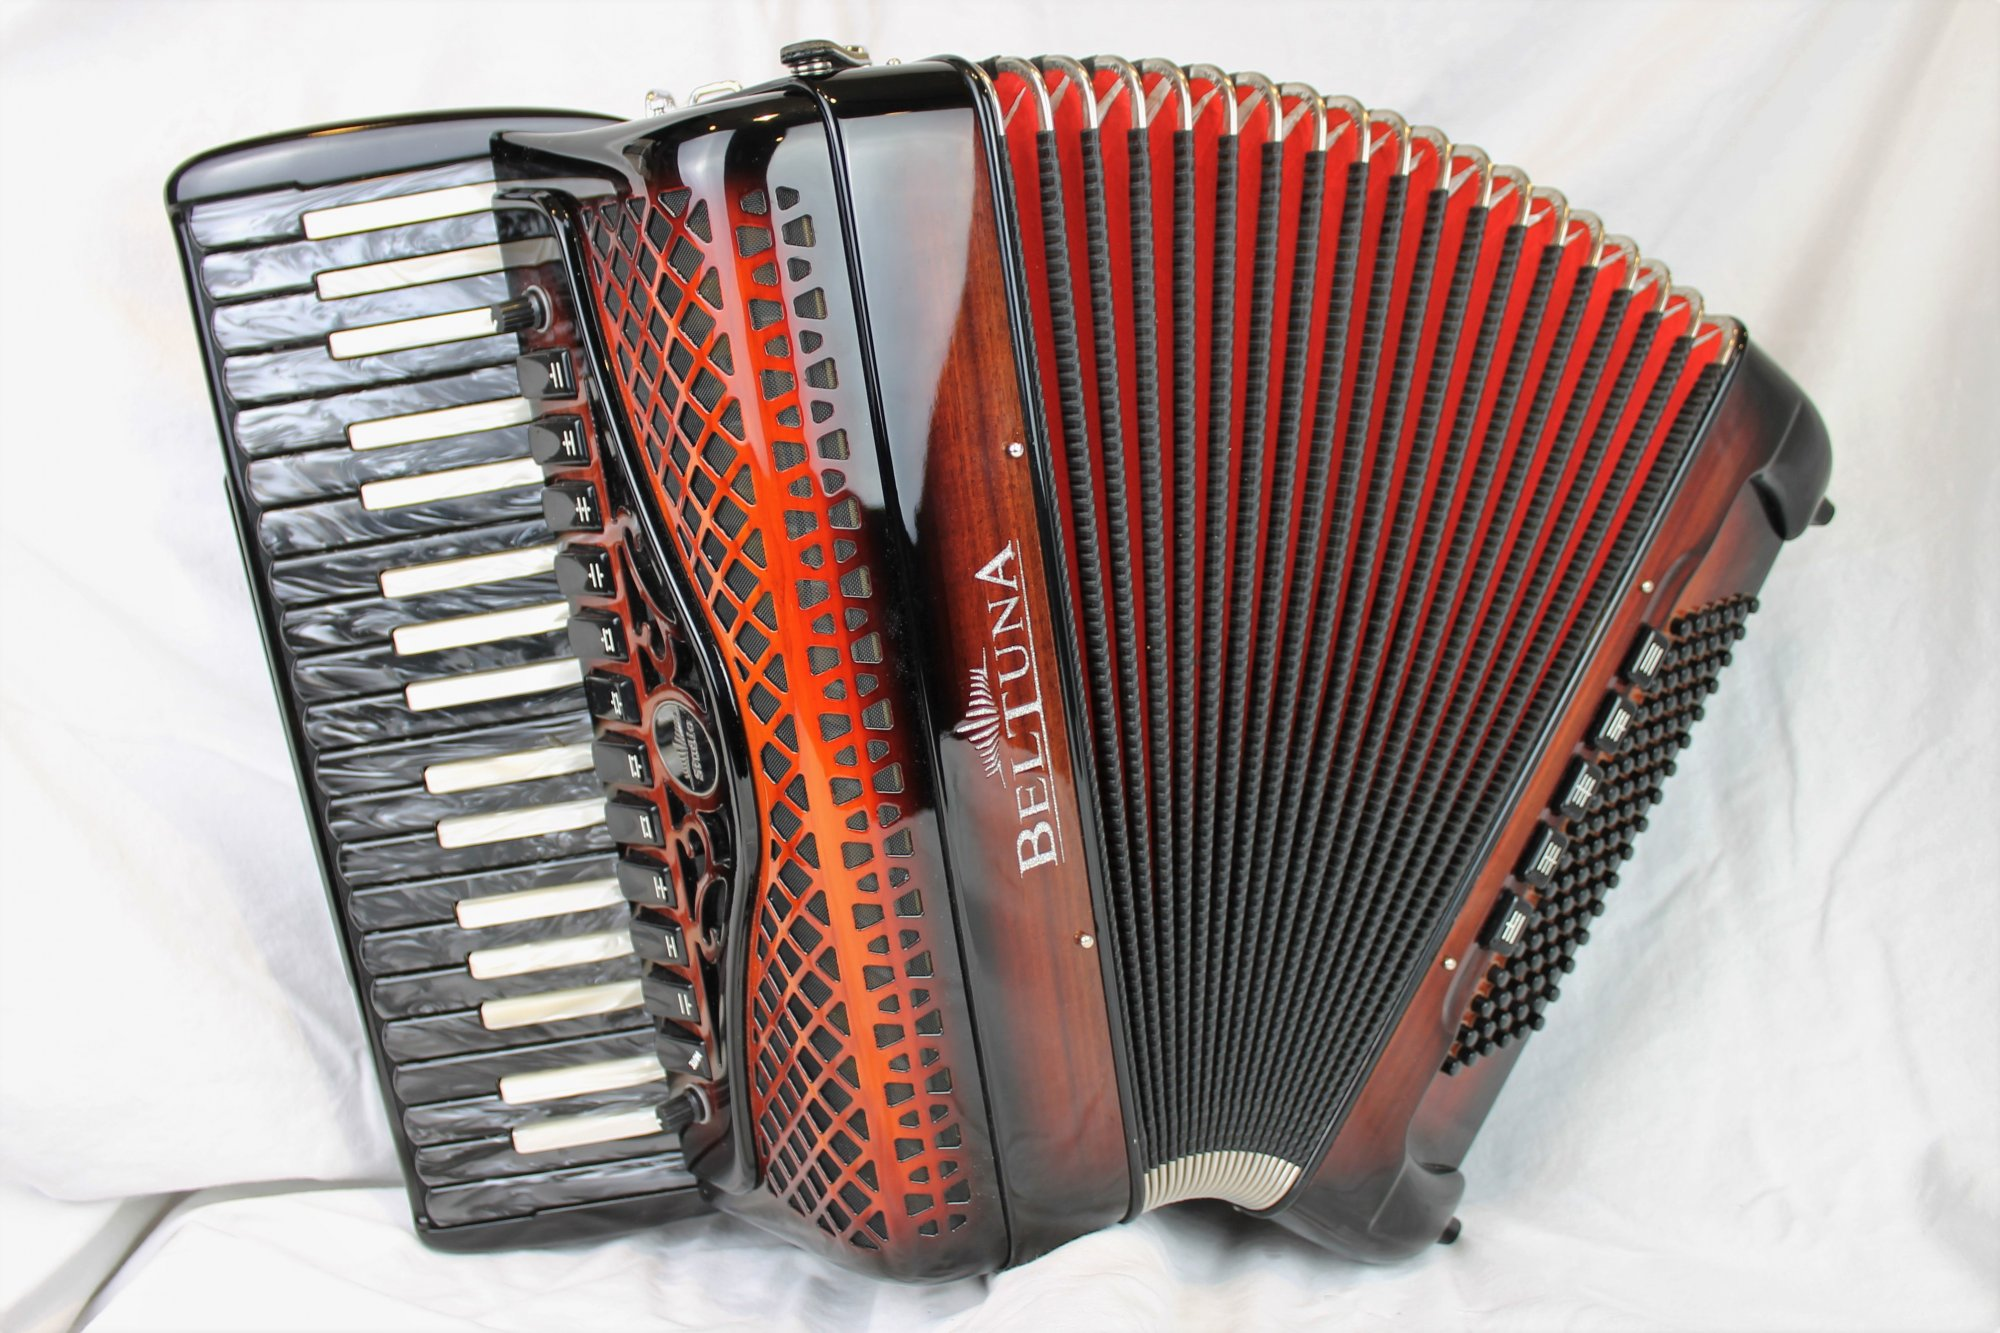 3661 - Certified Pre-Owned Enchanted Forest Beltuna Studio IV Piano Accordion LMMH 37 96